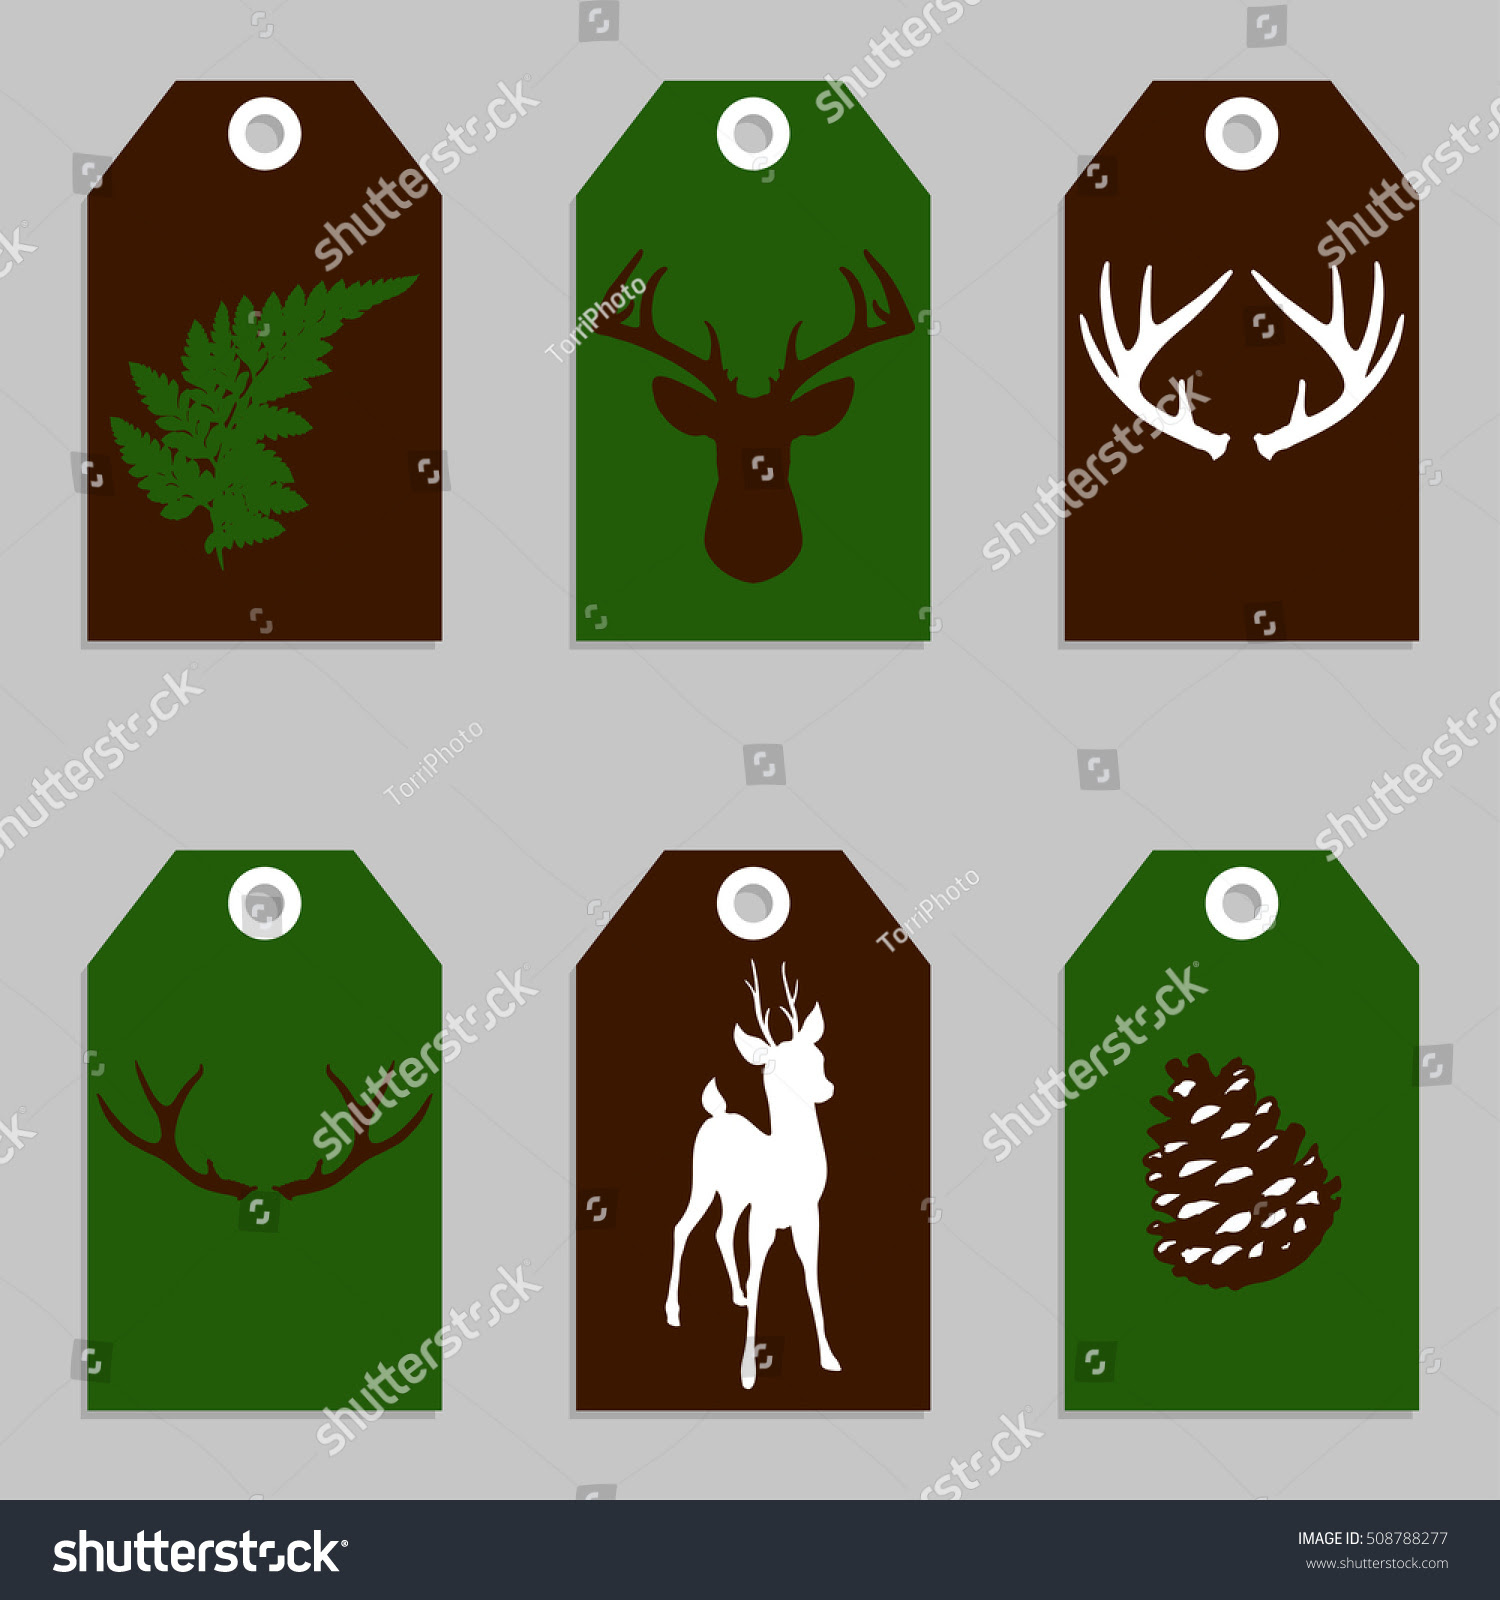 http://www.shutterstock.com/pic-508788277/stock-vector-set-of-green-and-brown-woodland-gift-tags-with-forest-elements-deer-antlers-fern-leaf-and-pine-cone-vector-illustration-eps-8.html